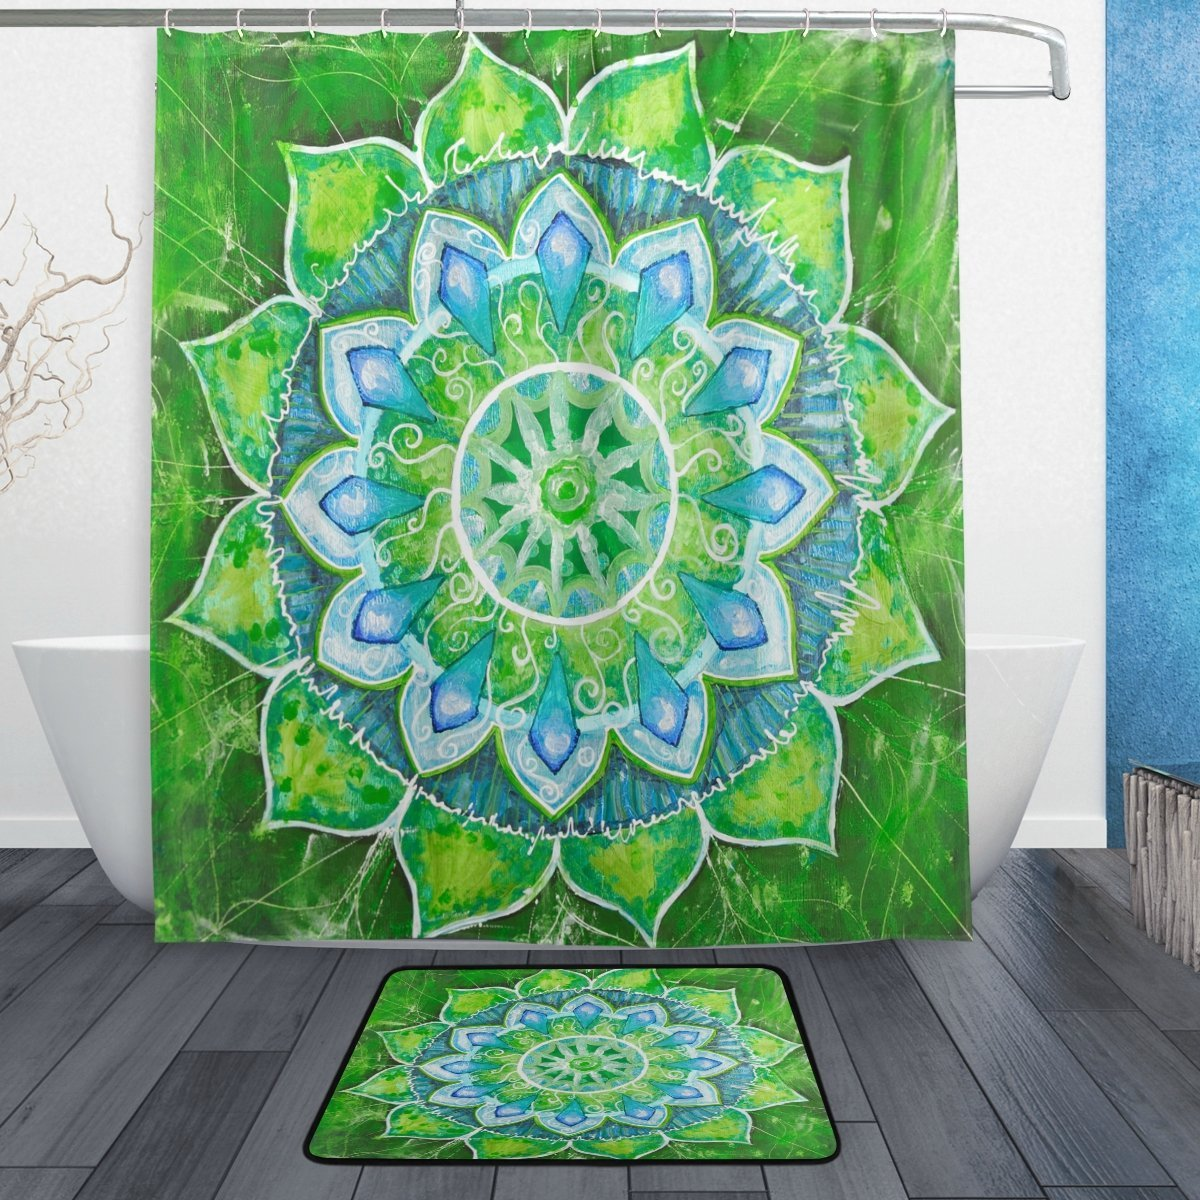 Floral Flower Indian Mandala Shower Curtain and Mat Set, Ethnic Exotic Flower Abstract Green Painted Waterproof Fabric